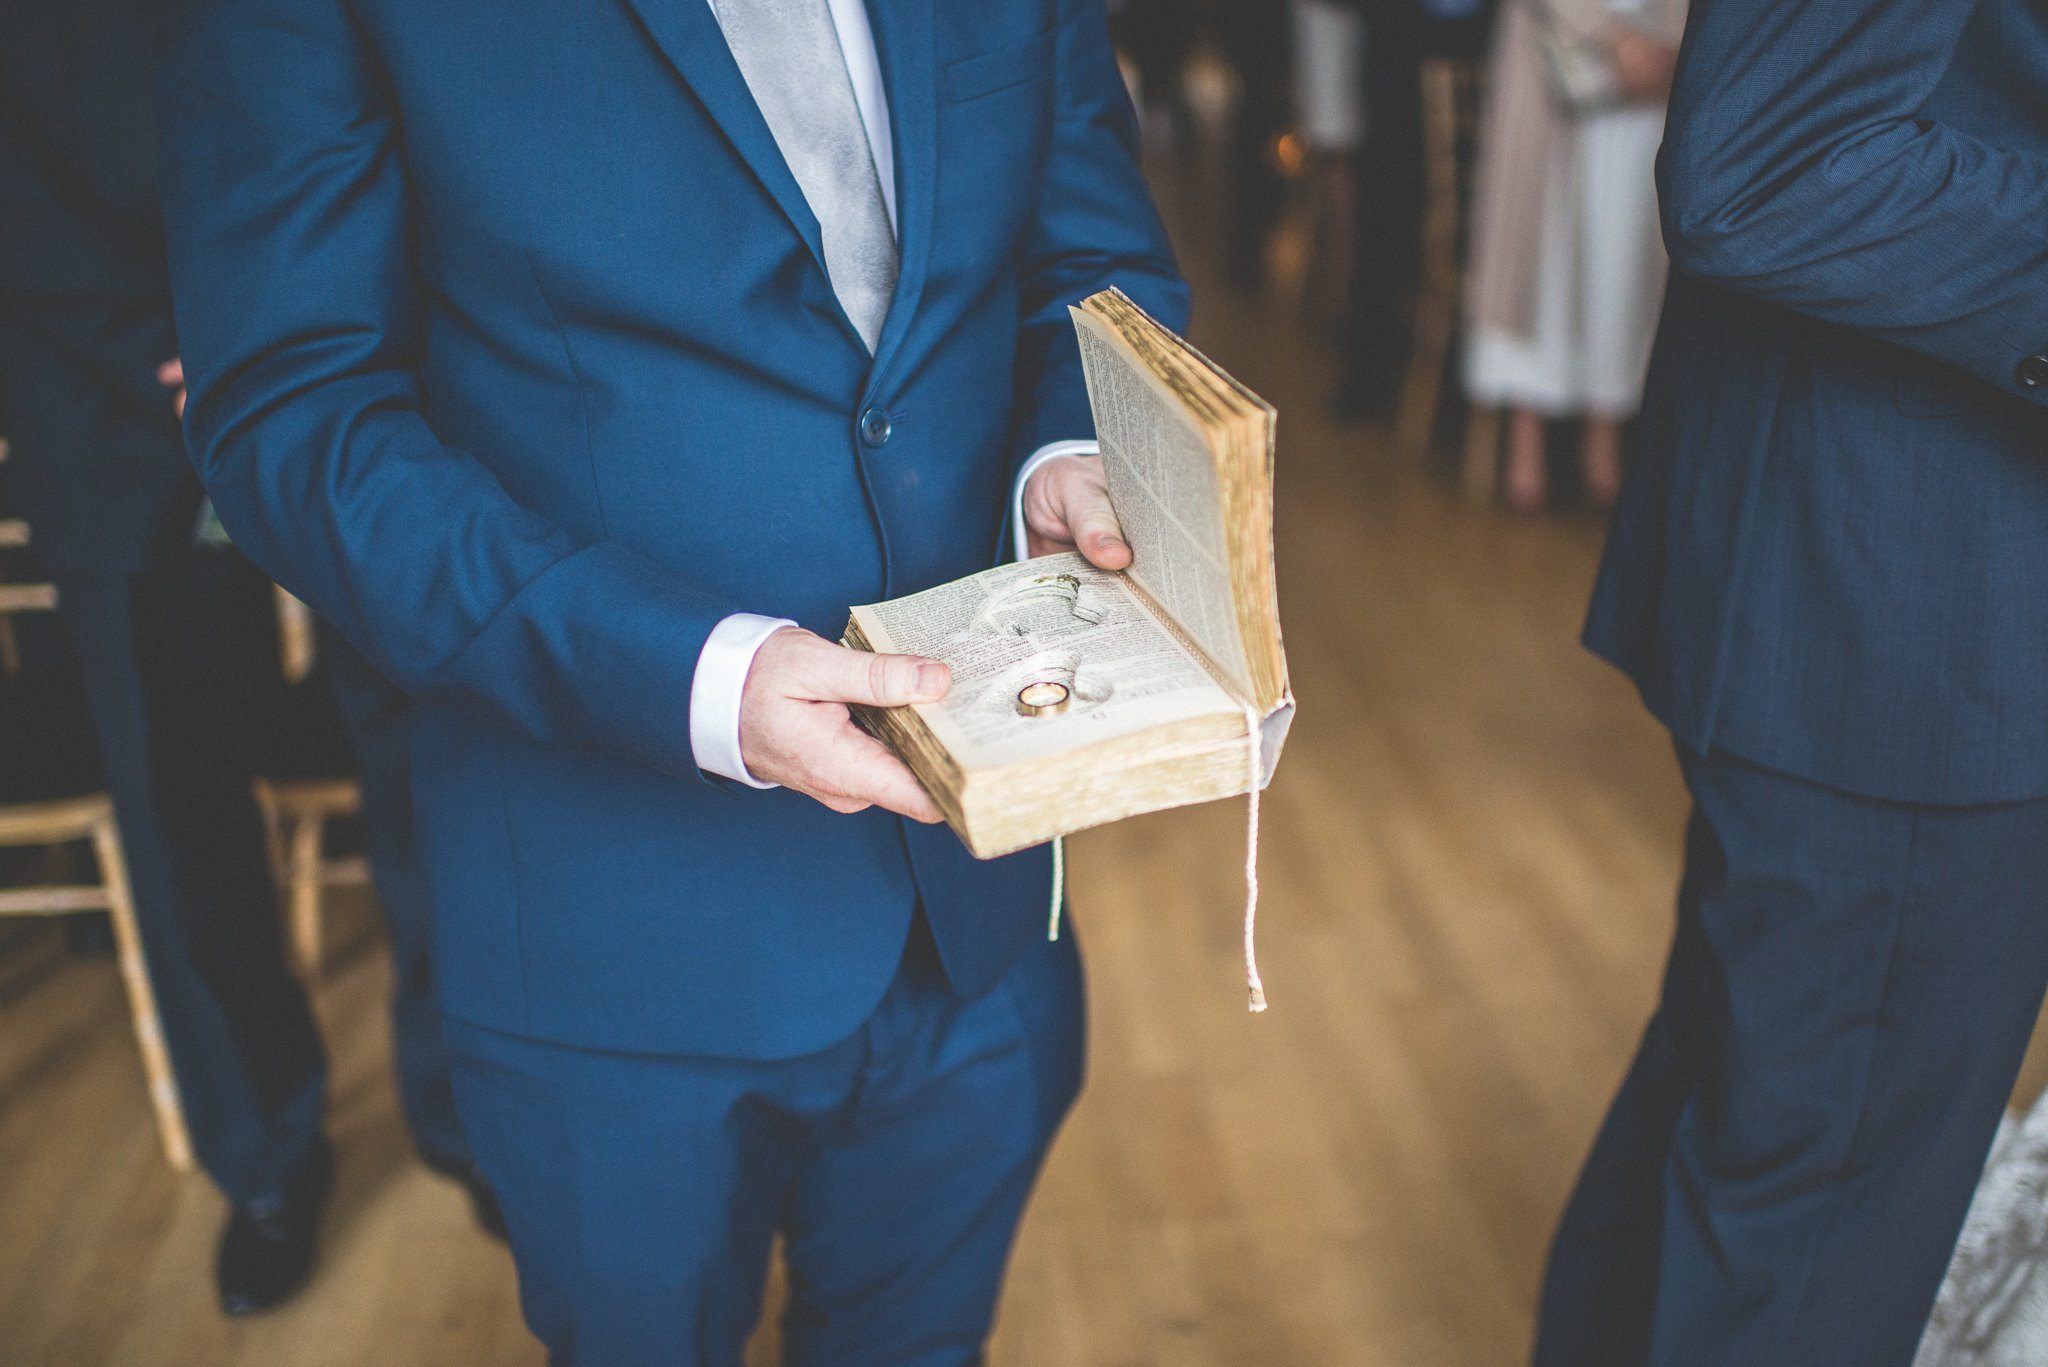 A close up of the wedding rings, which are carried inside a book with hearts cut into the pages